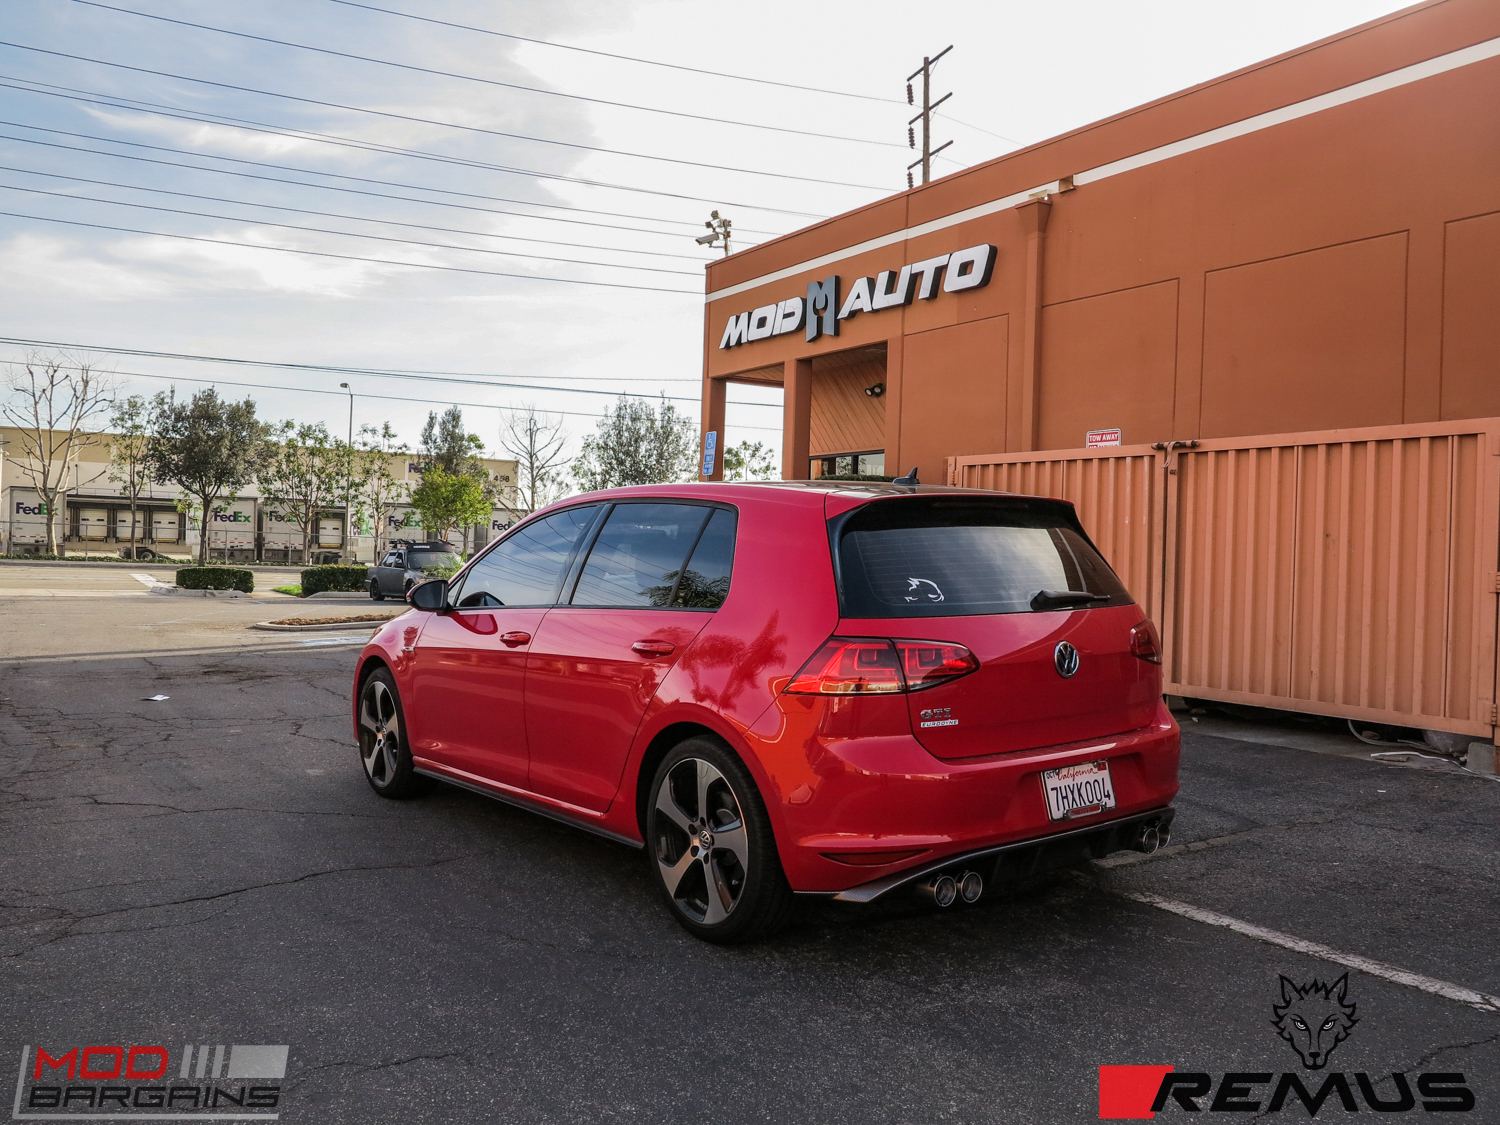 tech the 5 best mods for vw golf gti mk 7 charger fuse box 5 best [ 1500 x 1125 Pixel ]